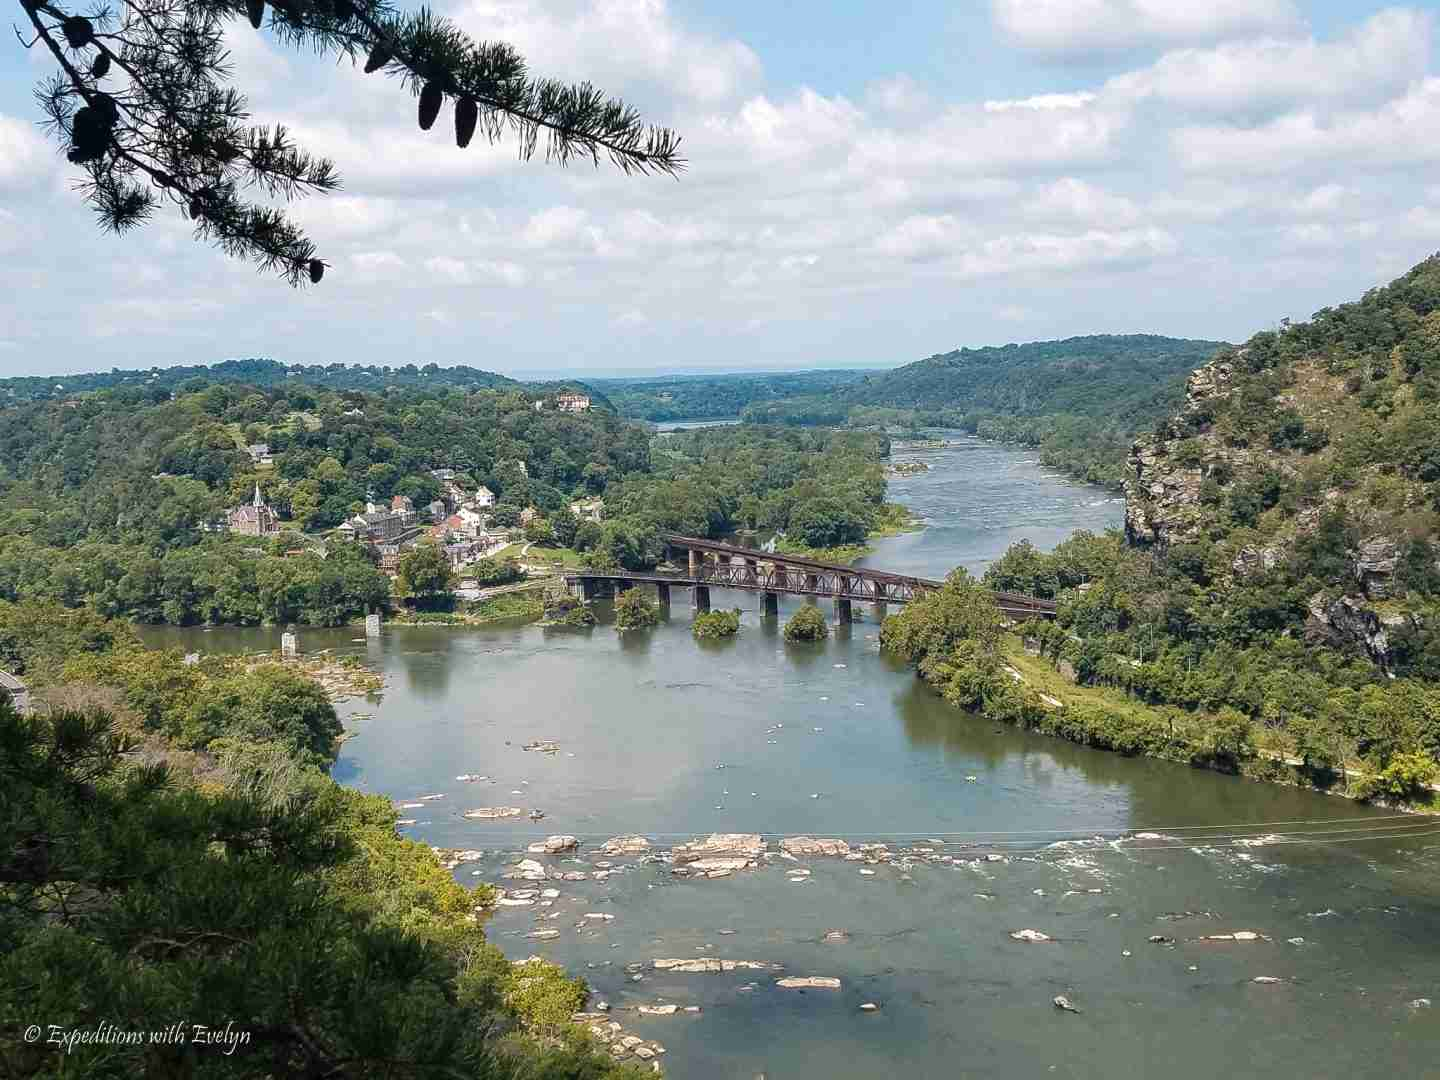 View of the town of Harpers Ferry and the confluence of the Shenandoah and Potomac Rivers.